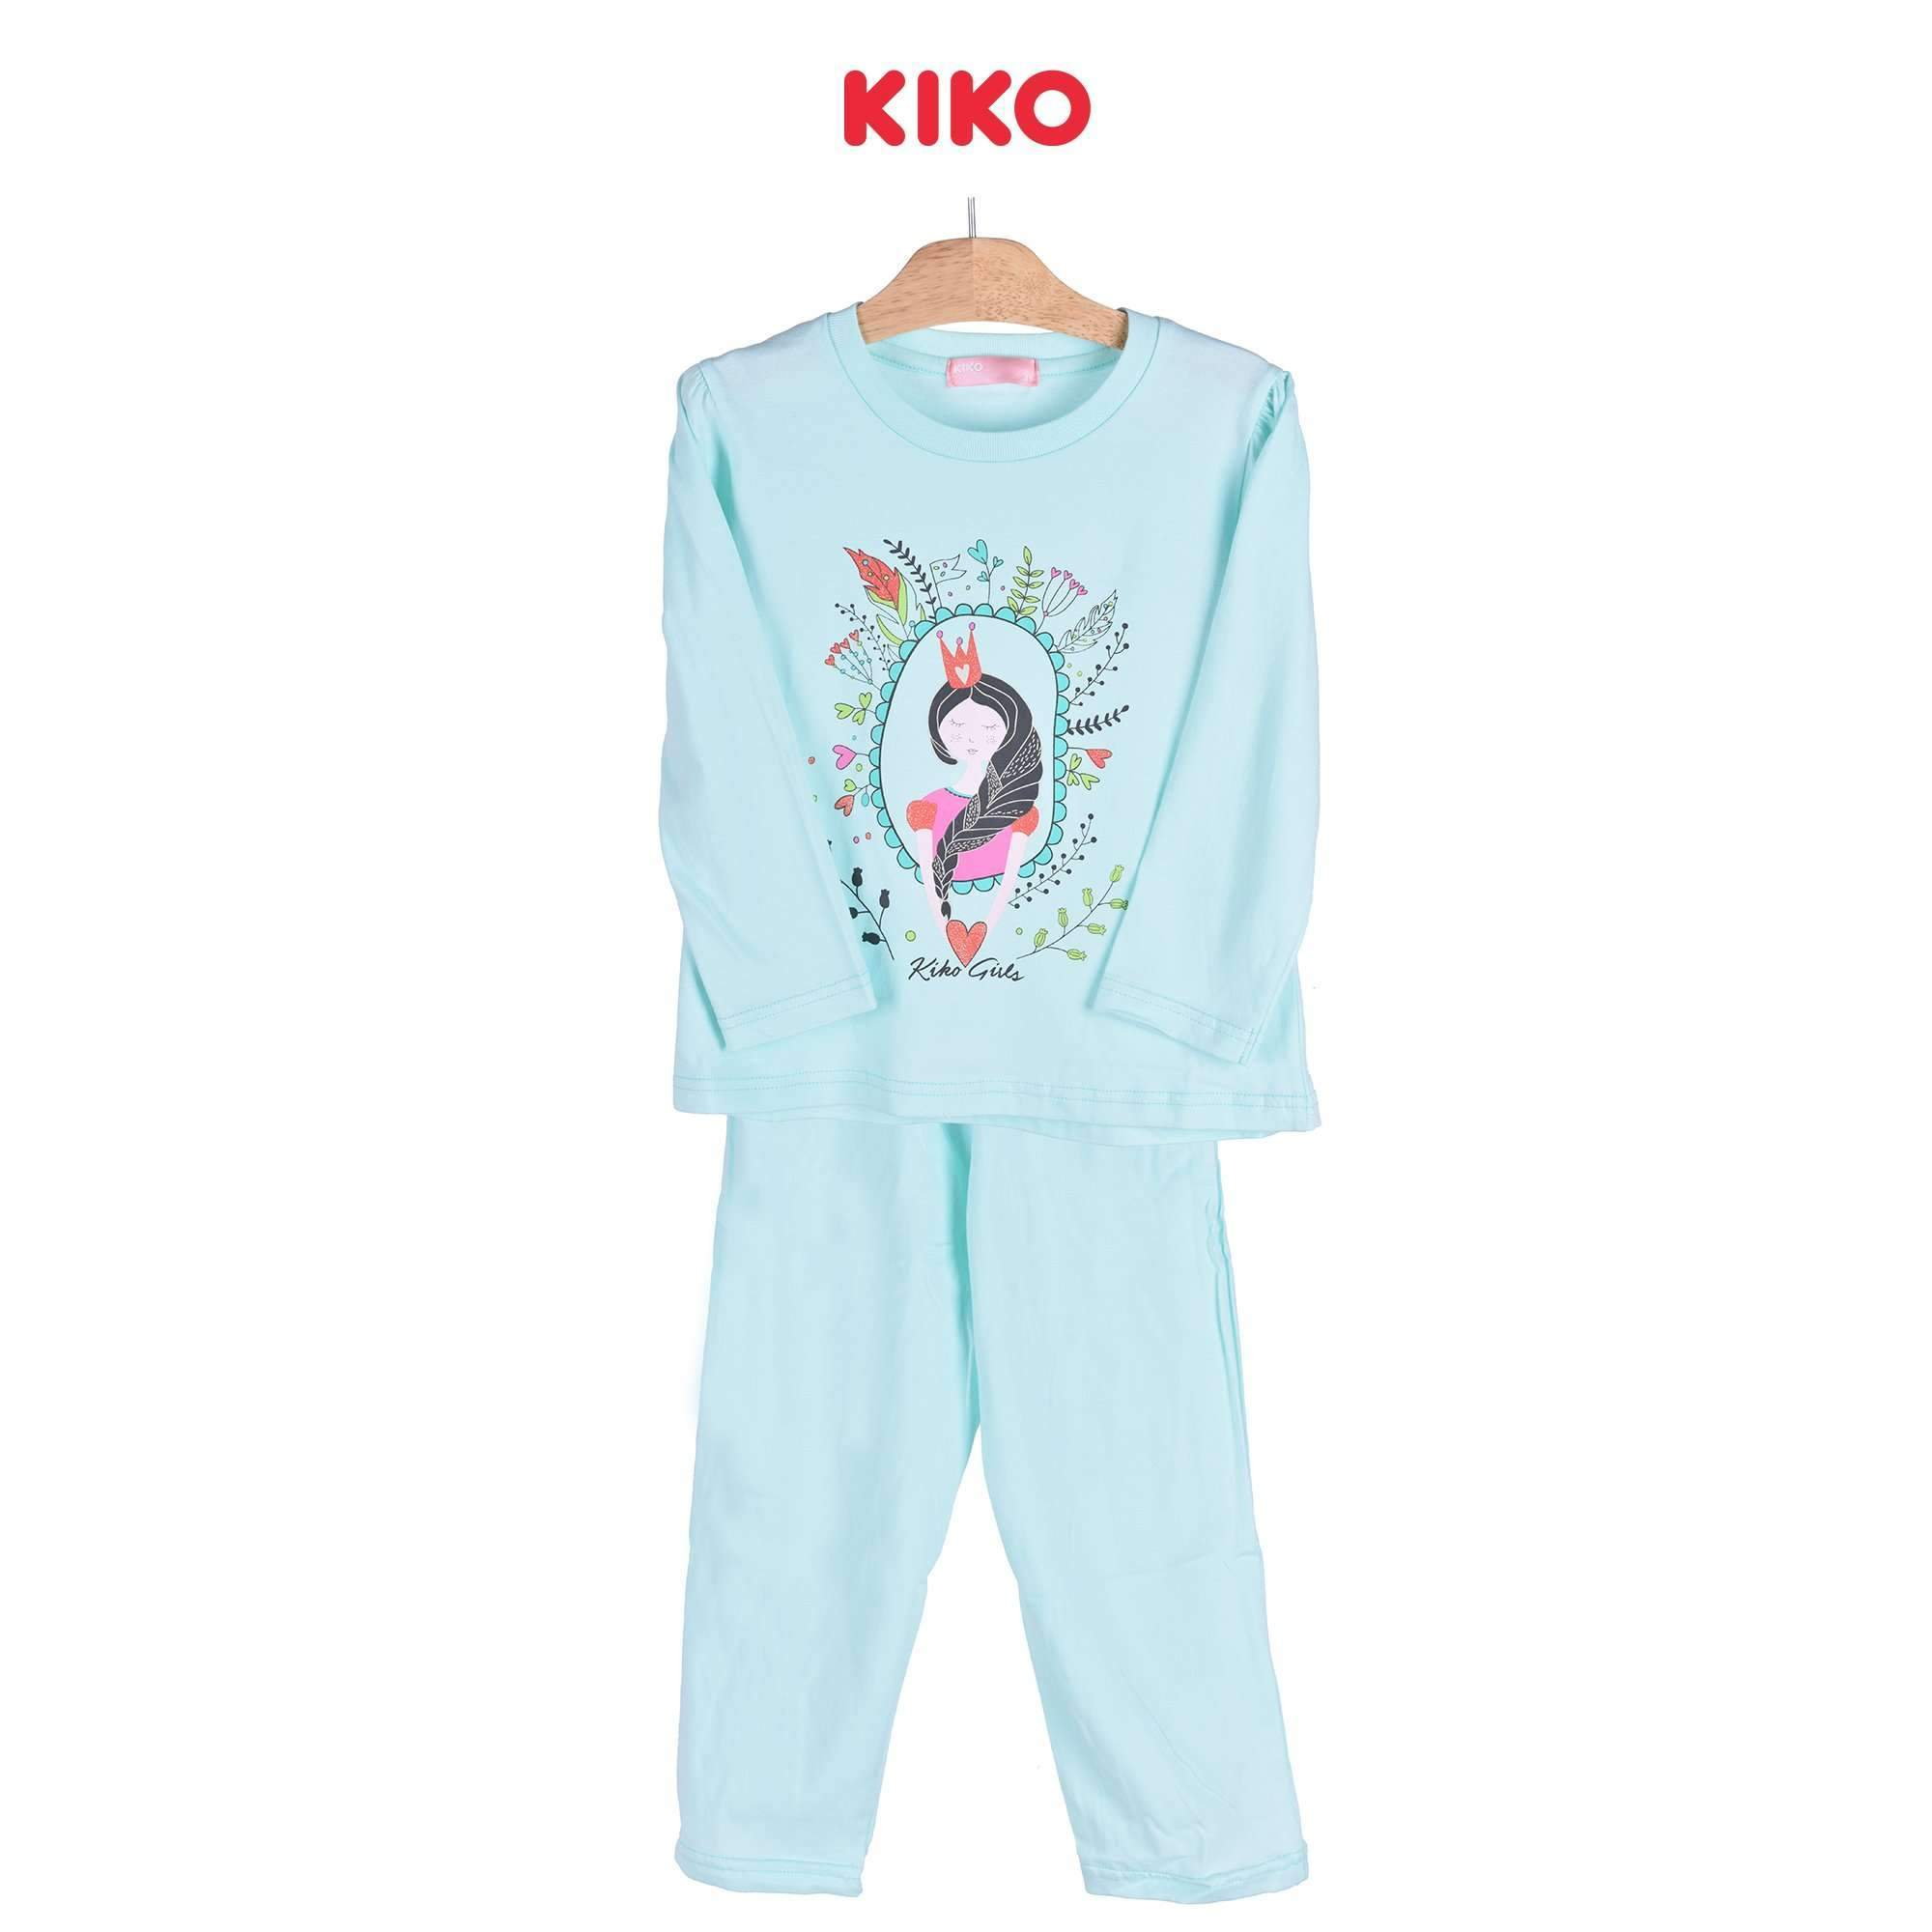 KIKO Girl Long Sleeve Long Pants Suit 126052-434 : Buy KIKO online at CMG.MY